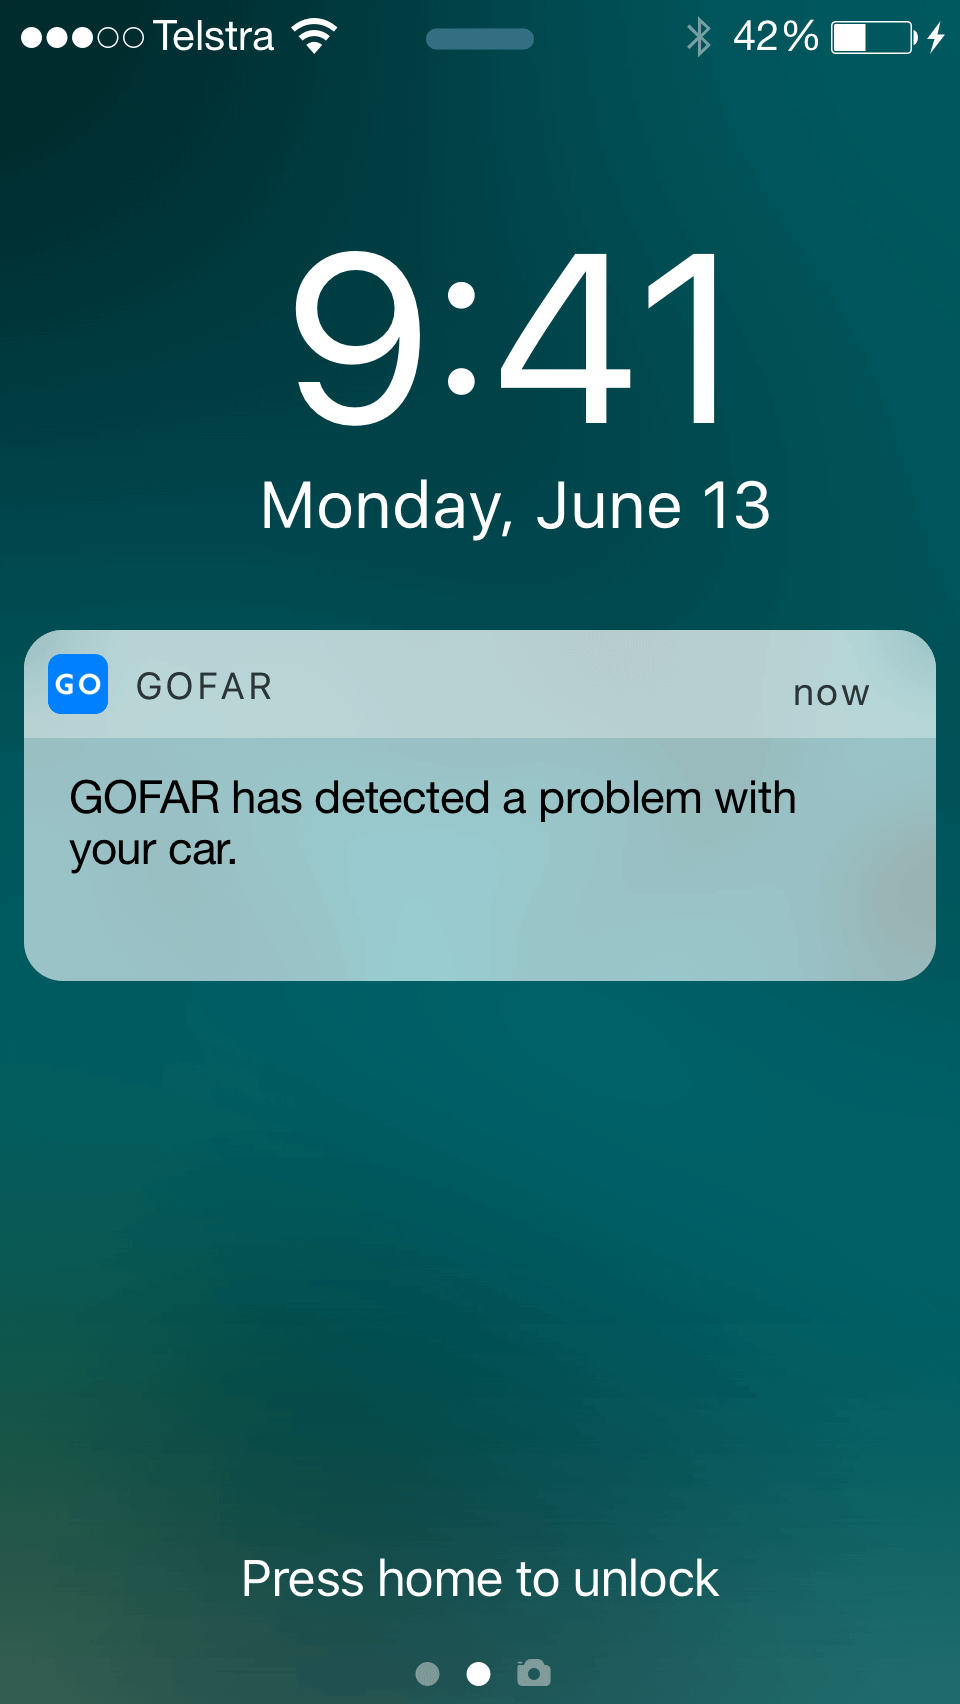 GOFAR phone notification that it has detected a problem with your car.